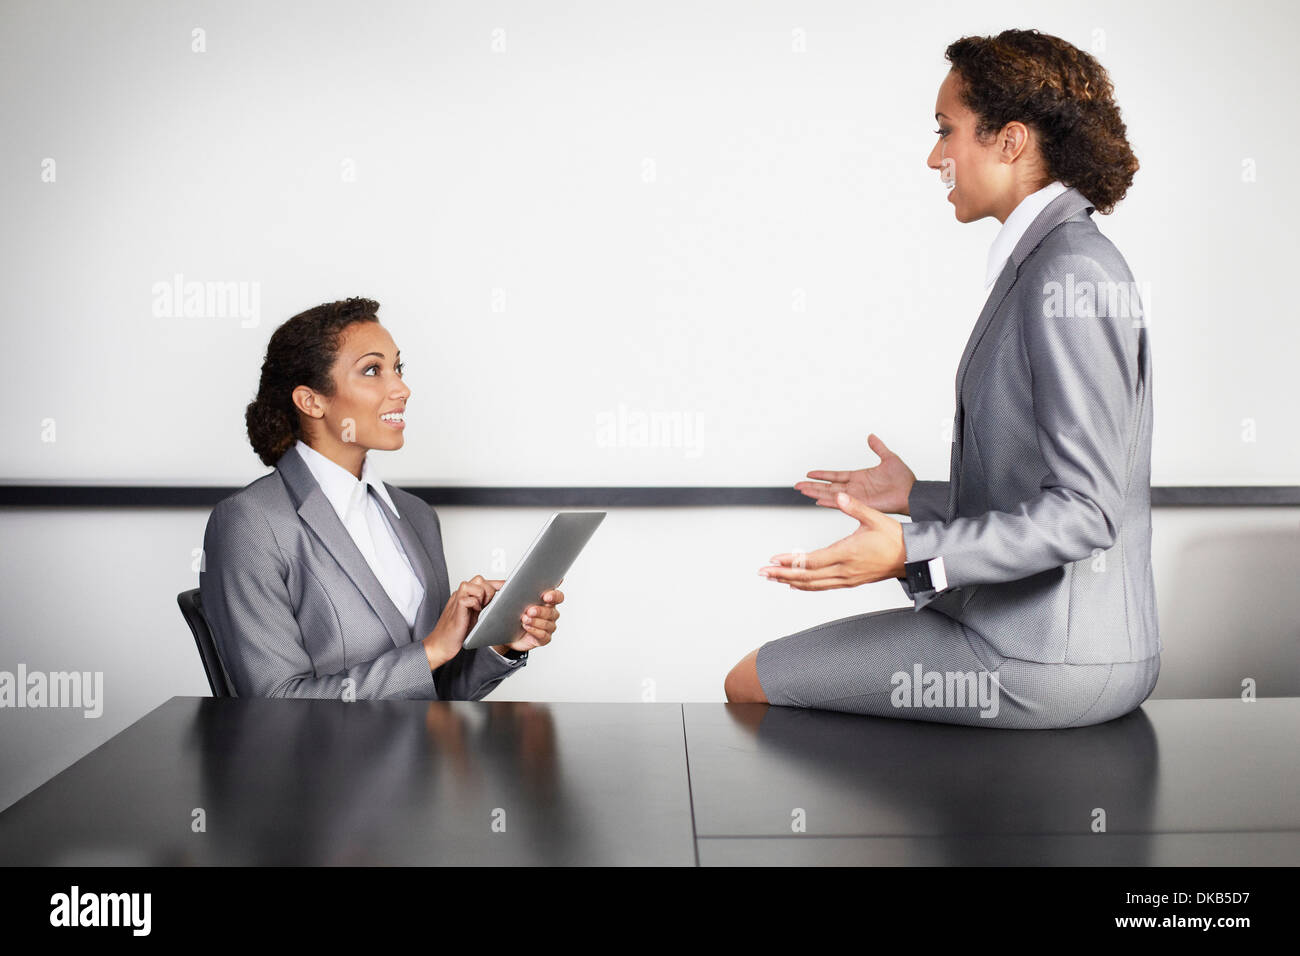 Businesswomen in office, multiple image - Stock Image